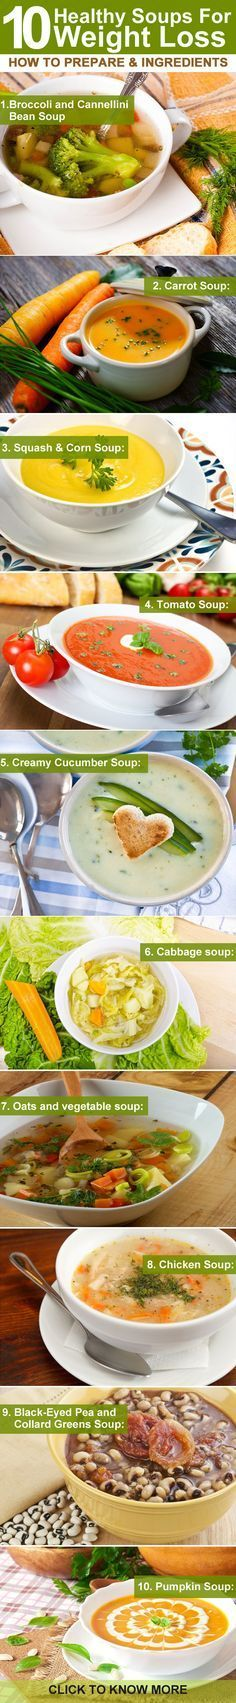 Top 10 Healthy Soups For Weight Loss: Here are 10 easy and healthy recipes of diet soups for weight loss for you to try for dinner tonight.